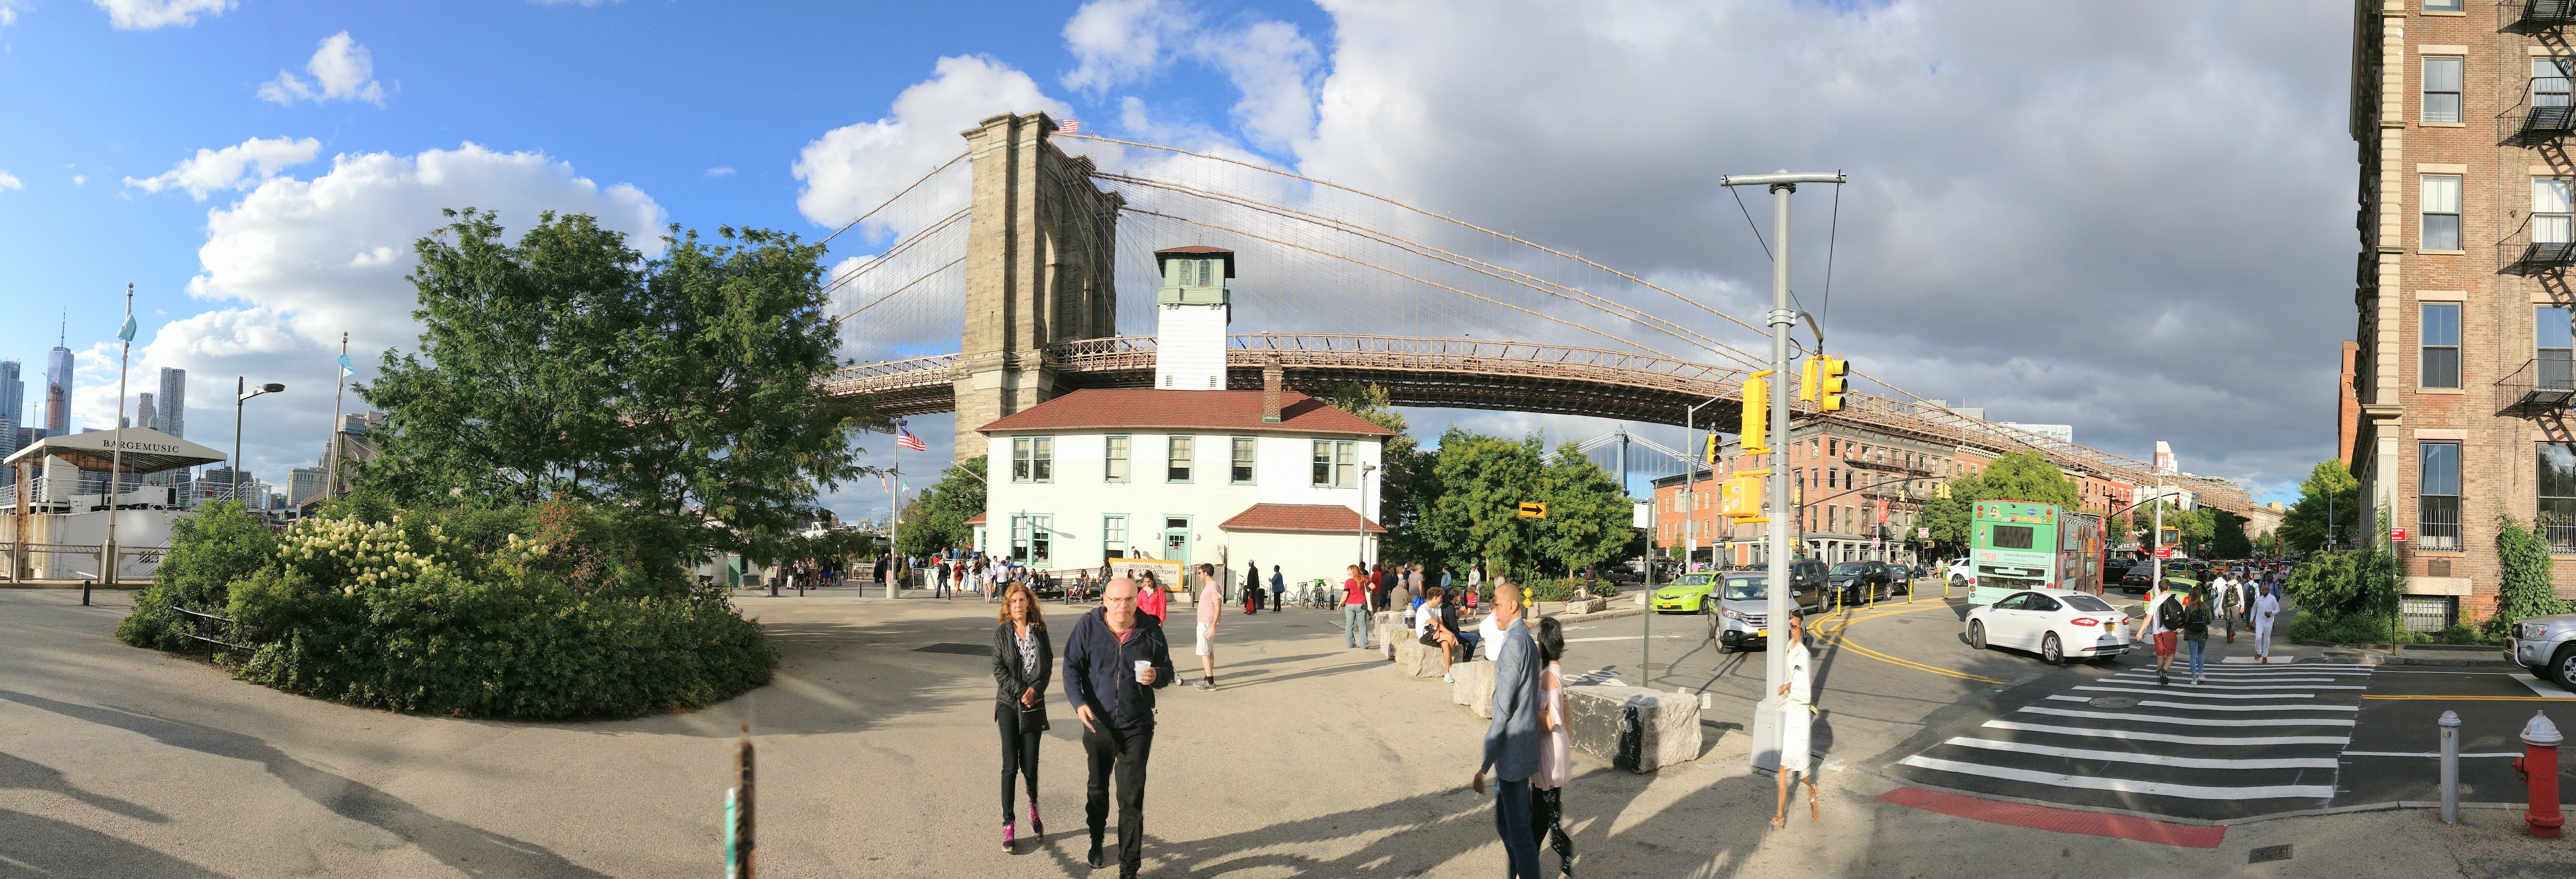 What To Do In A Day in DUMBO, Brooklyn | Musings and Adventures